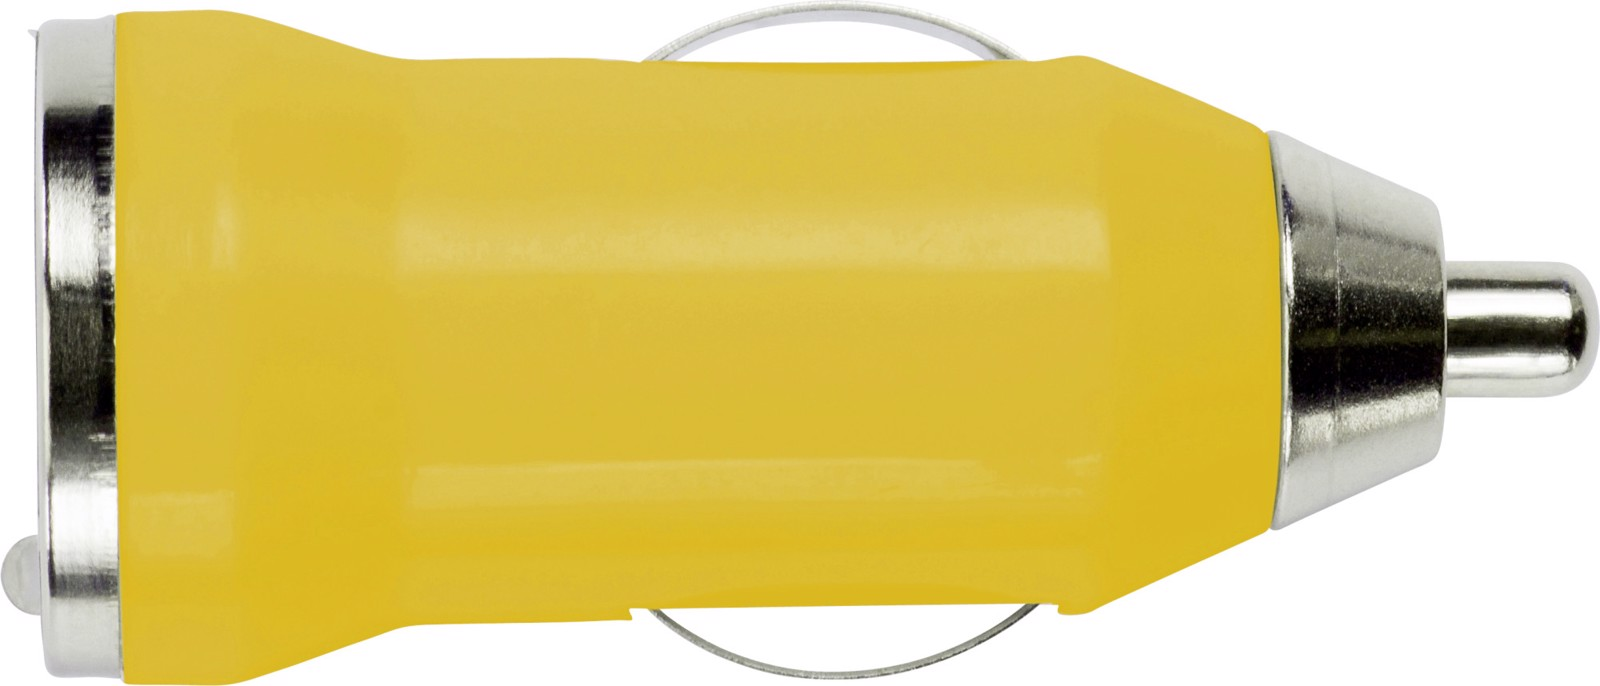 ABS car power adapter - Yellow